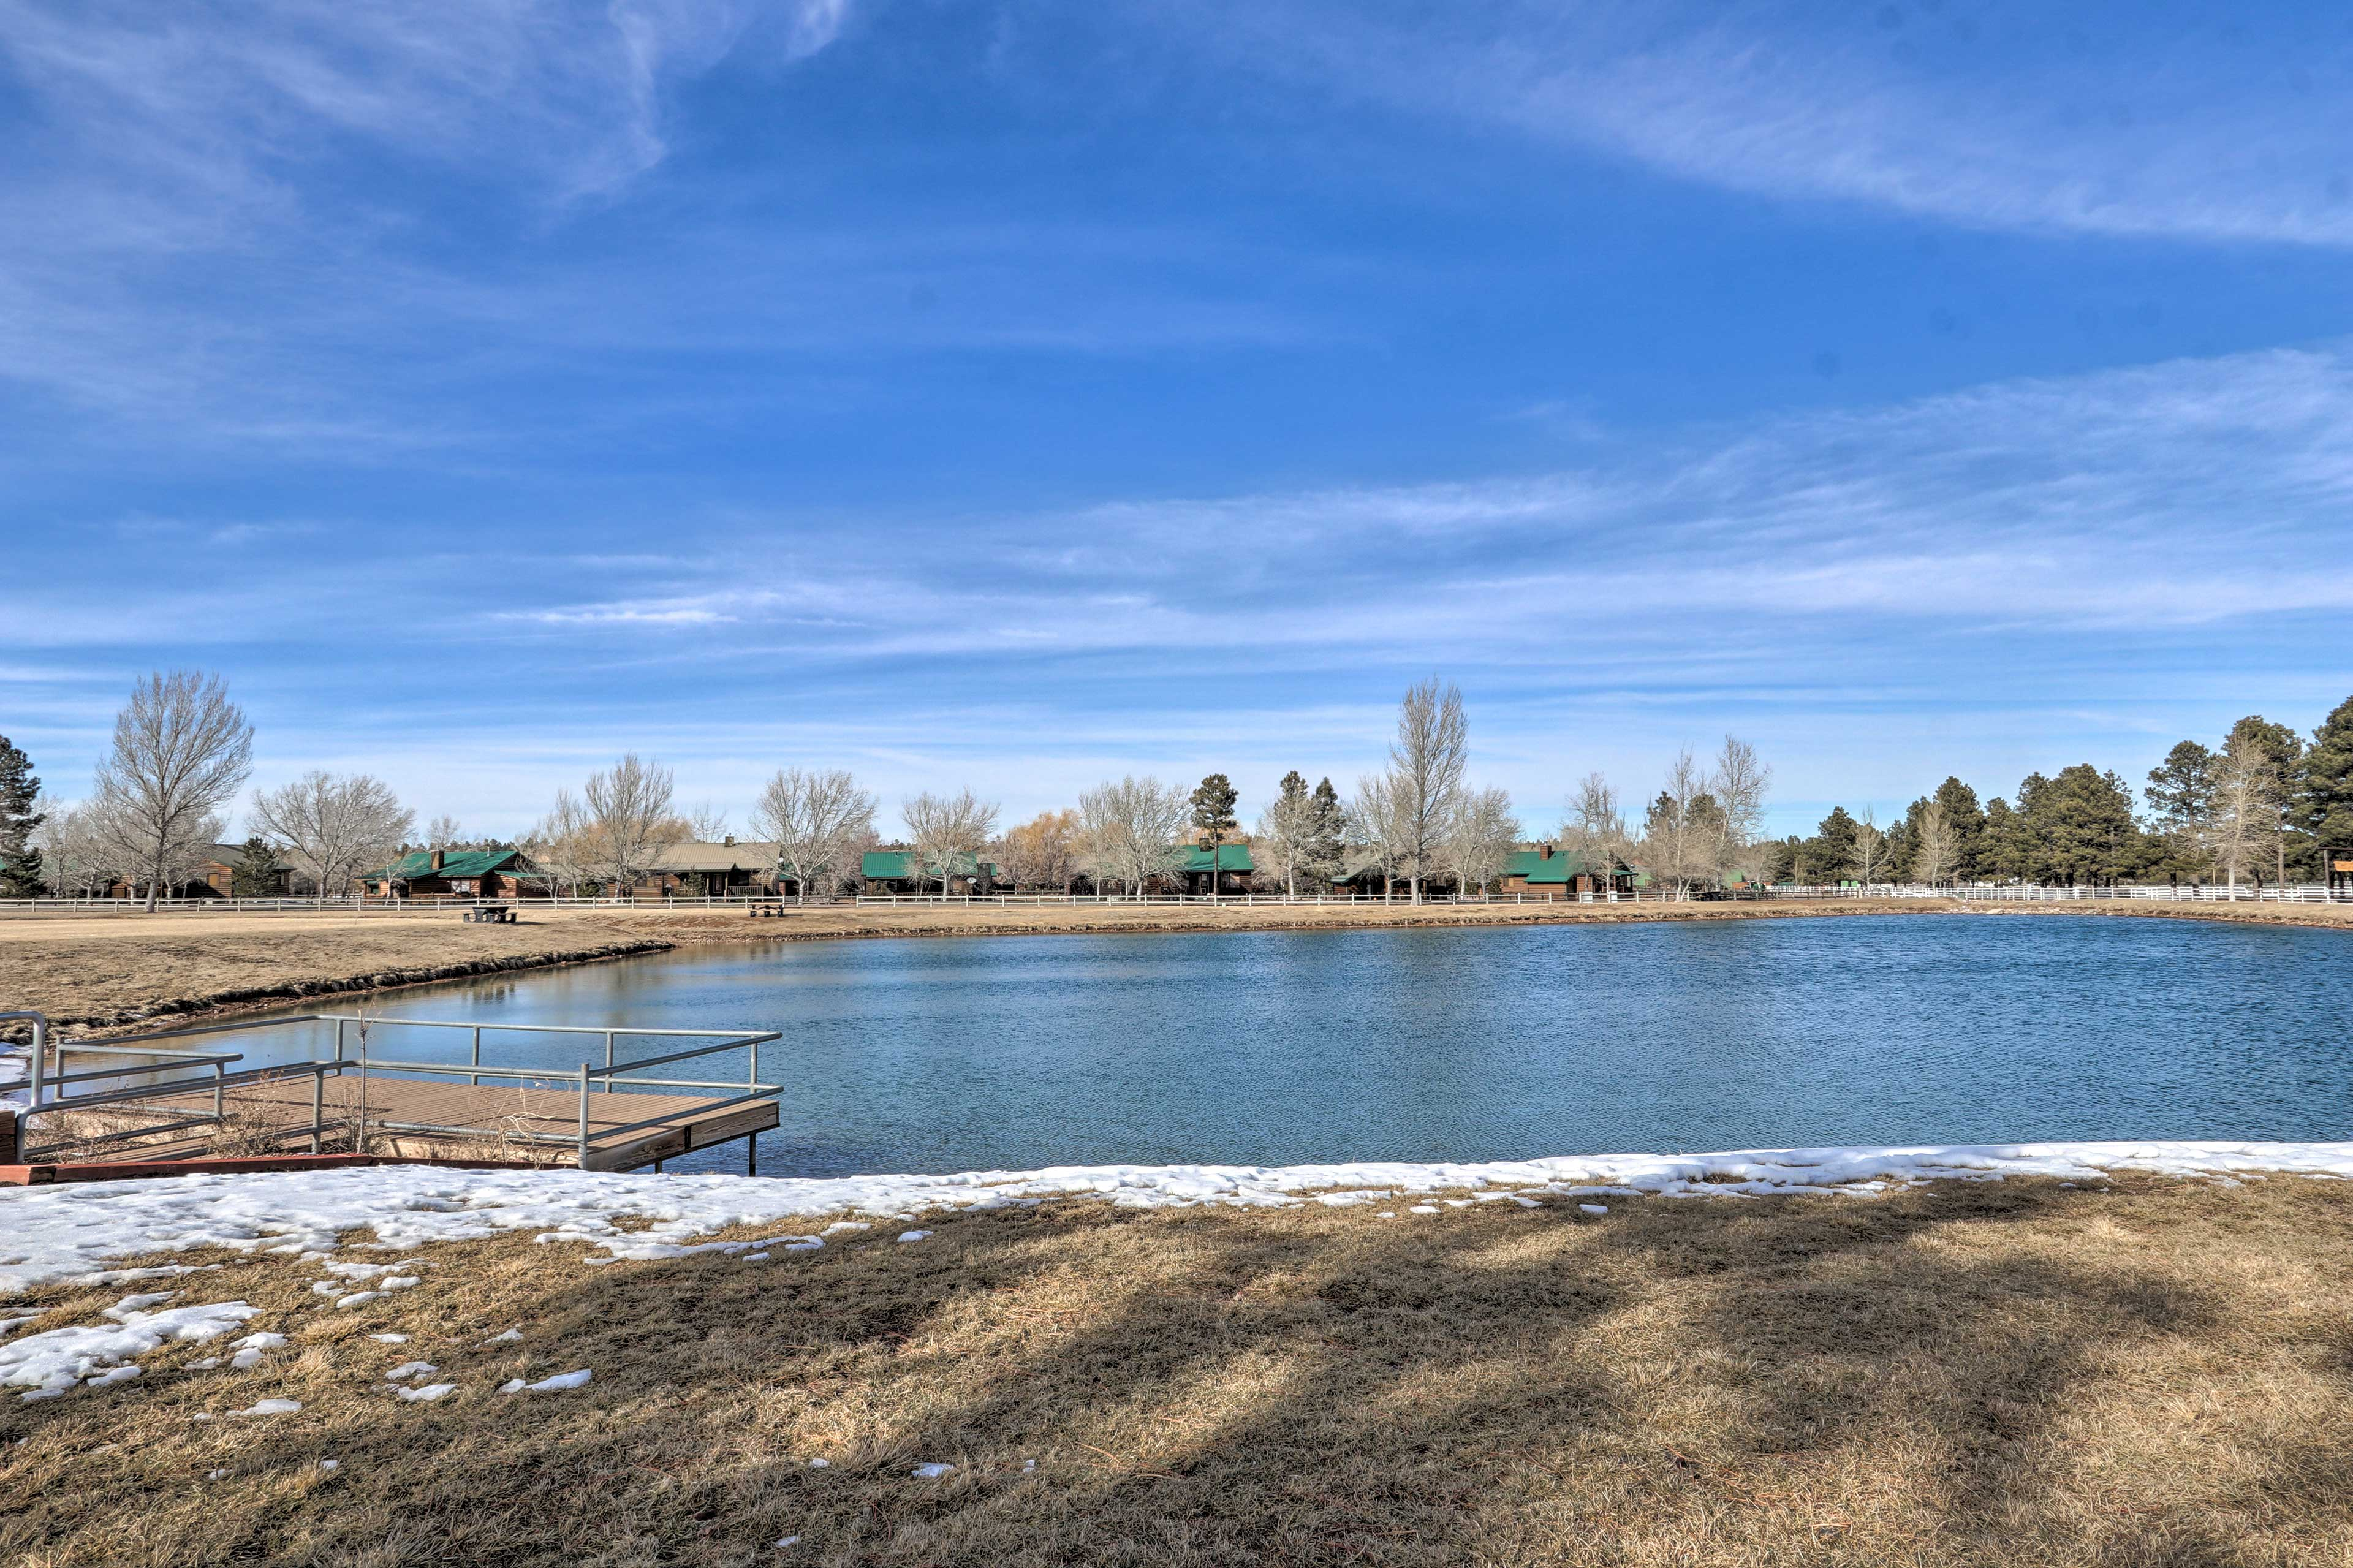 The Bison Ranch community offers a catch & release pond, playground, and more!